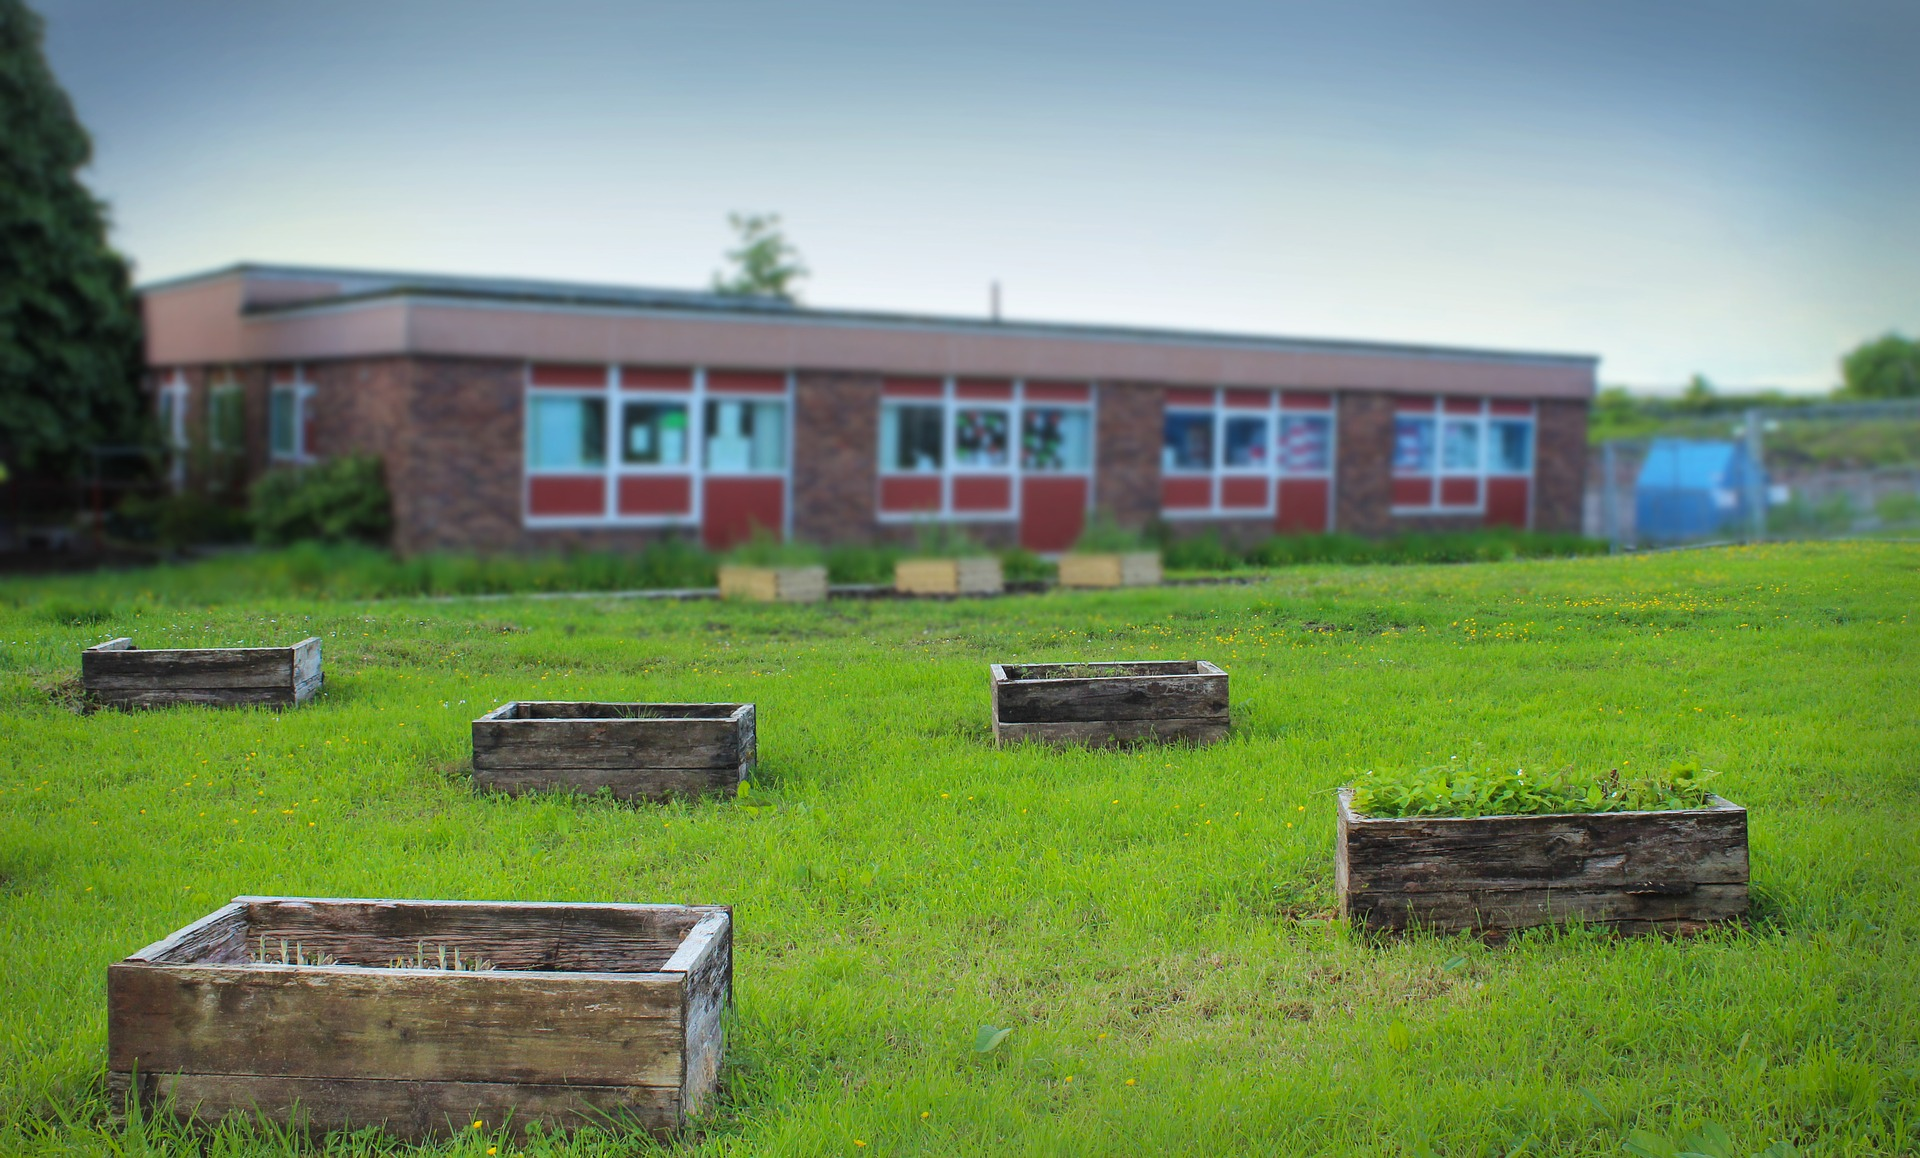 COVID-19 Funding for Residential Outdoor Education Centres in Scotland